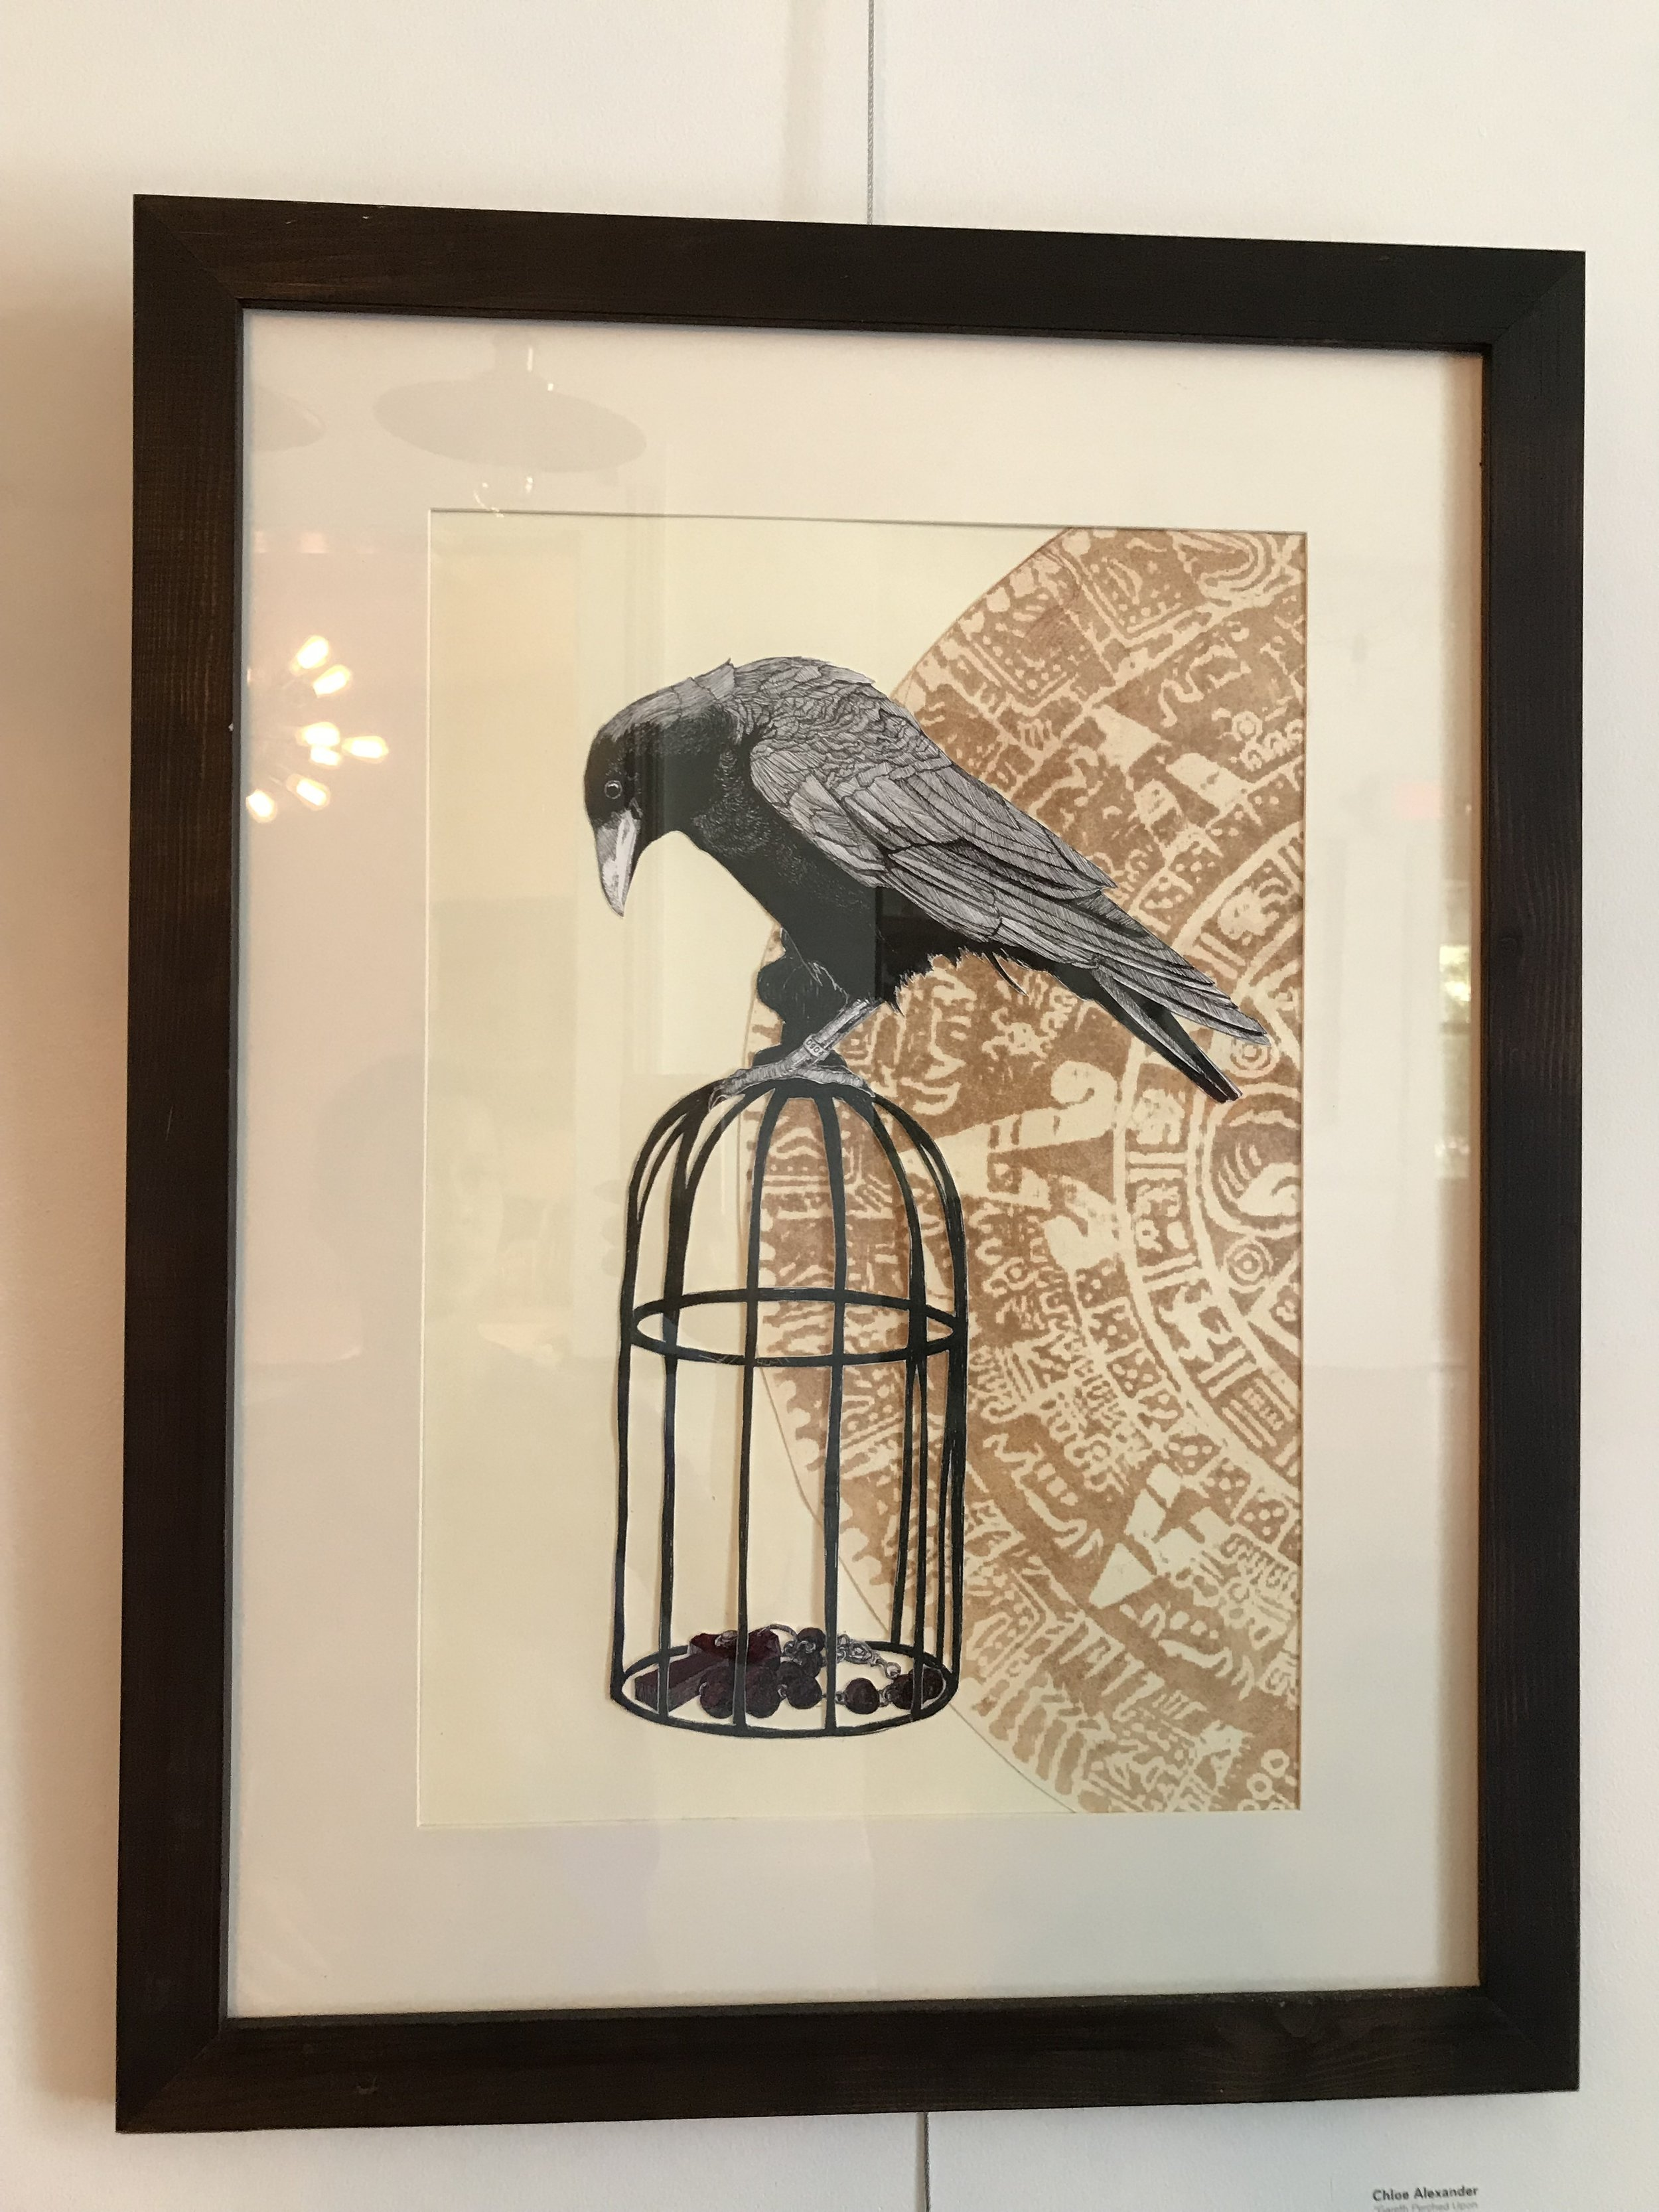 """Chloe Alexander  """"Gareth Perched Upon the Gilded Cage"""" 18"""" x 24""""   $150"""